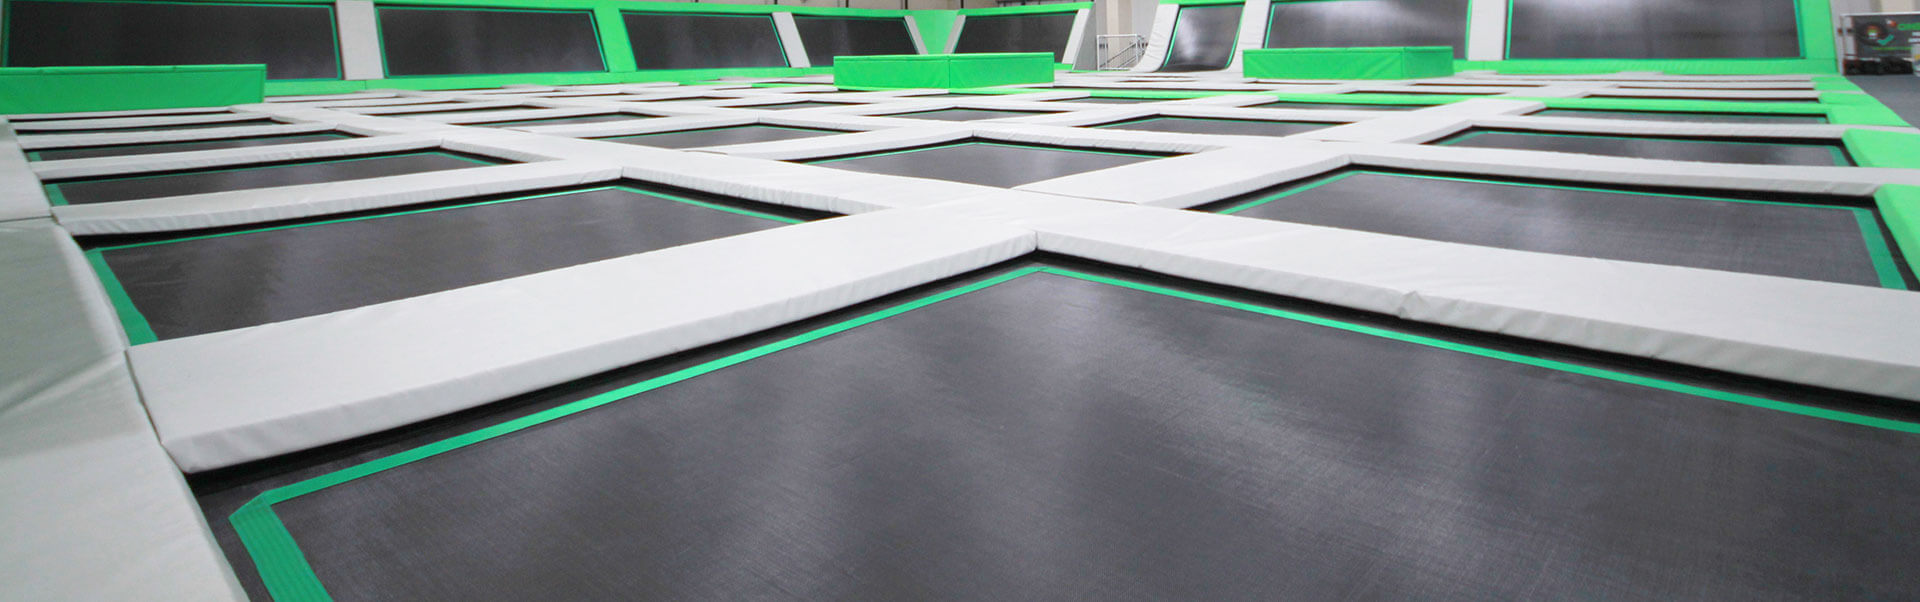 Ascent Trampoline Park Blackpool Lancashire Exclusive Park Hire